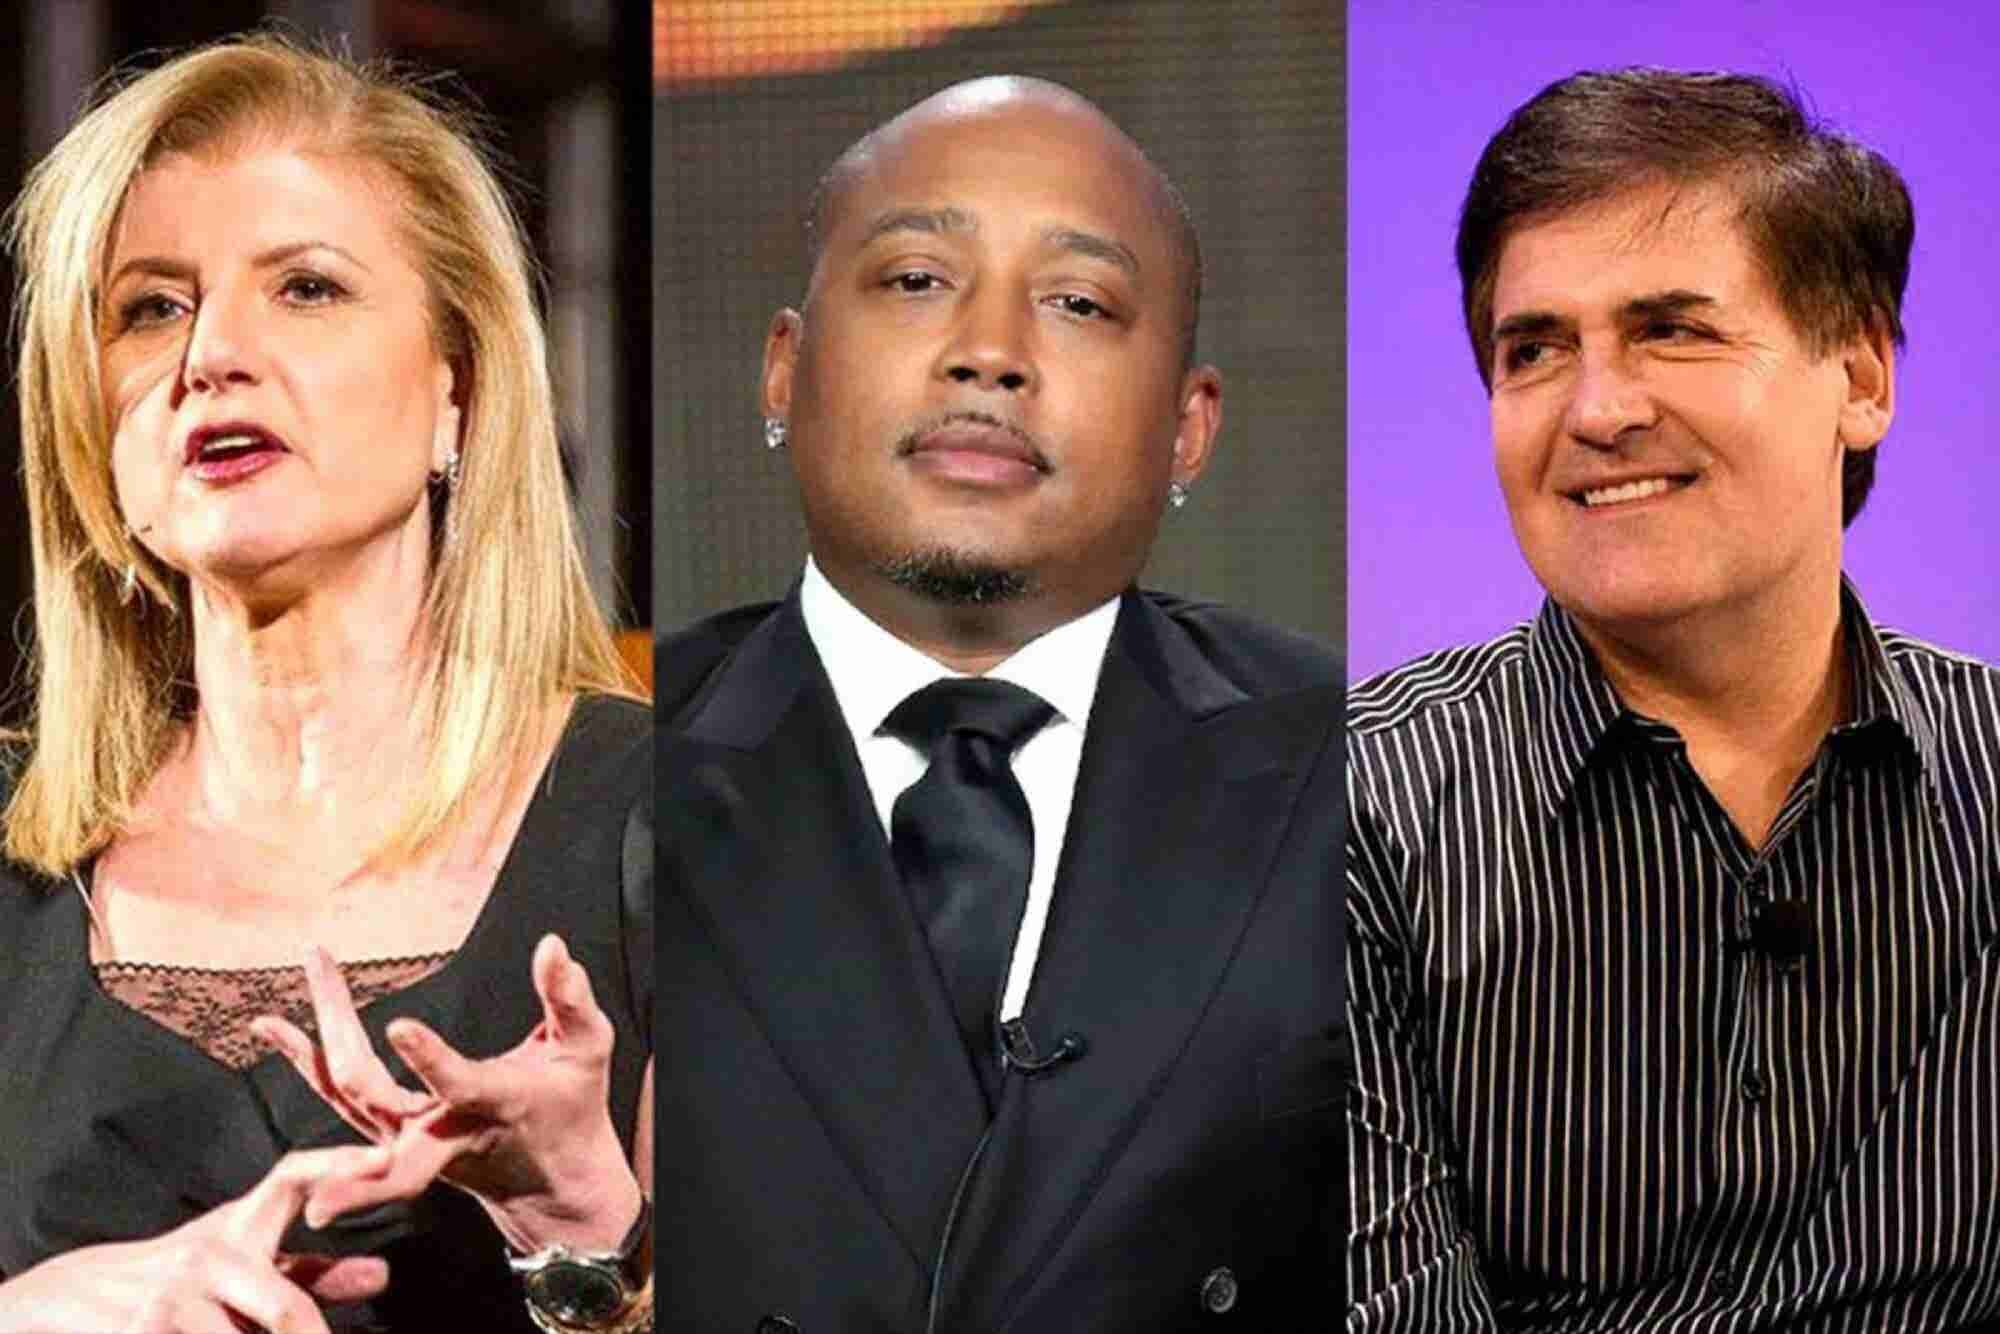 20 High-Powered Business Leaders Share Their New Year's Resolutions